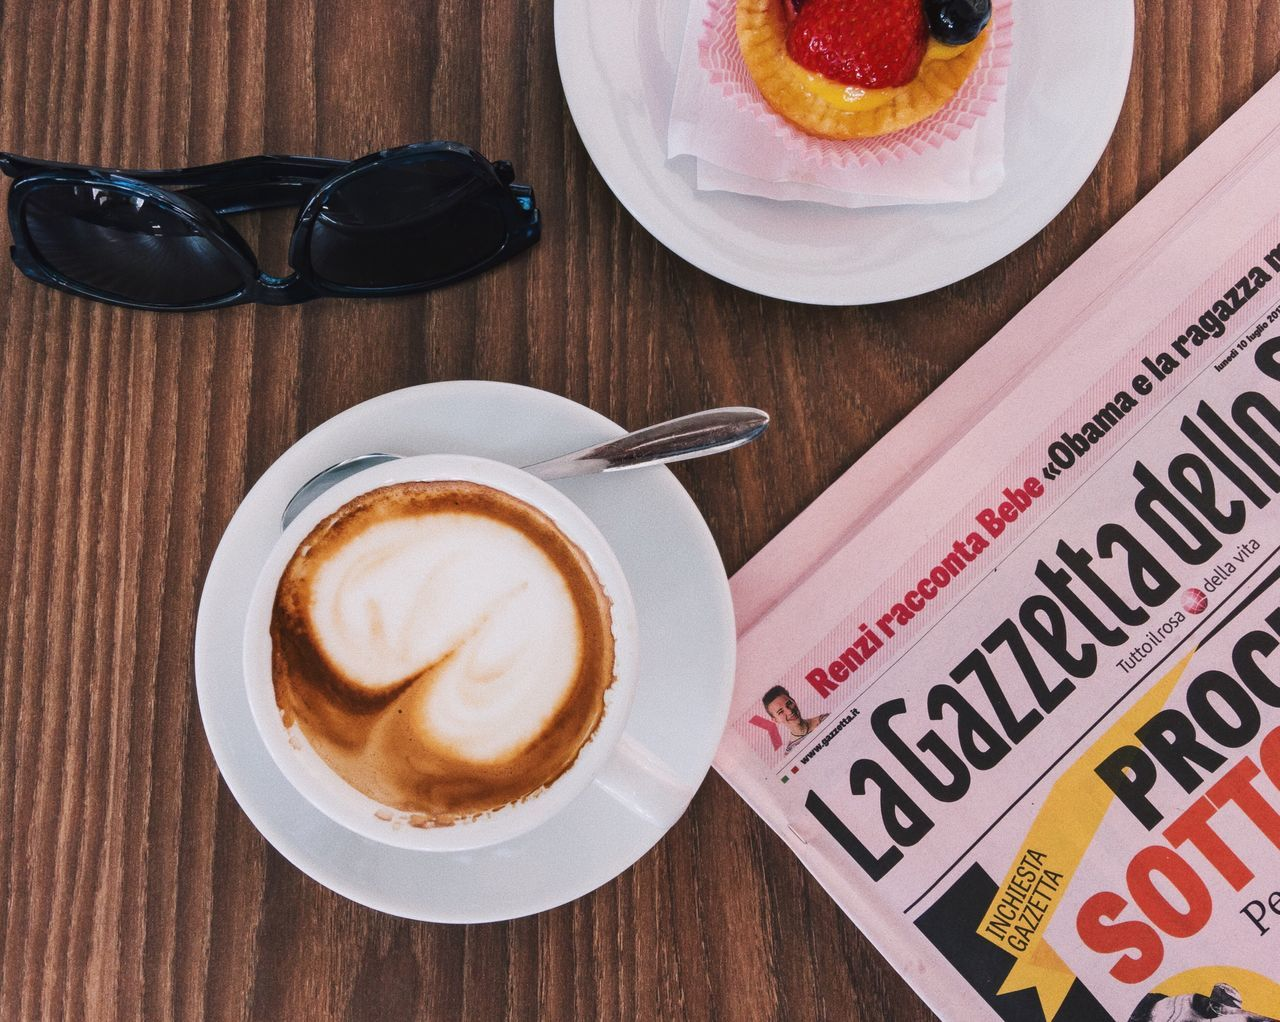 Italian colazione... Drink Coffee - Drink Coffee Cup Food And Drink Refreshment Frothy Drink Indoors  Freshness High Angle View Saucer No People Food Froth Art Cappuccino Close-up Latte Sweet Food Ready-to-eat Coffee Breakfast Colazione Details Of My Life Delicious Newspaper Enjoying Life